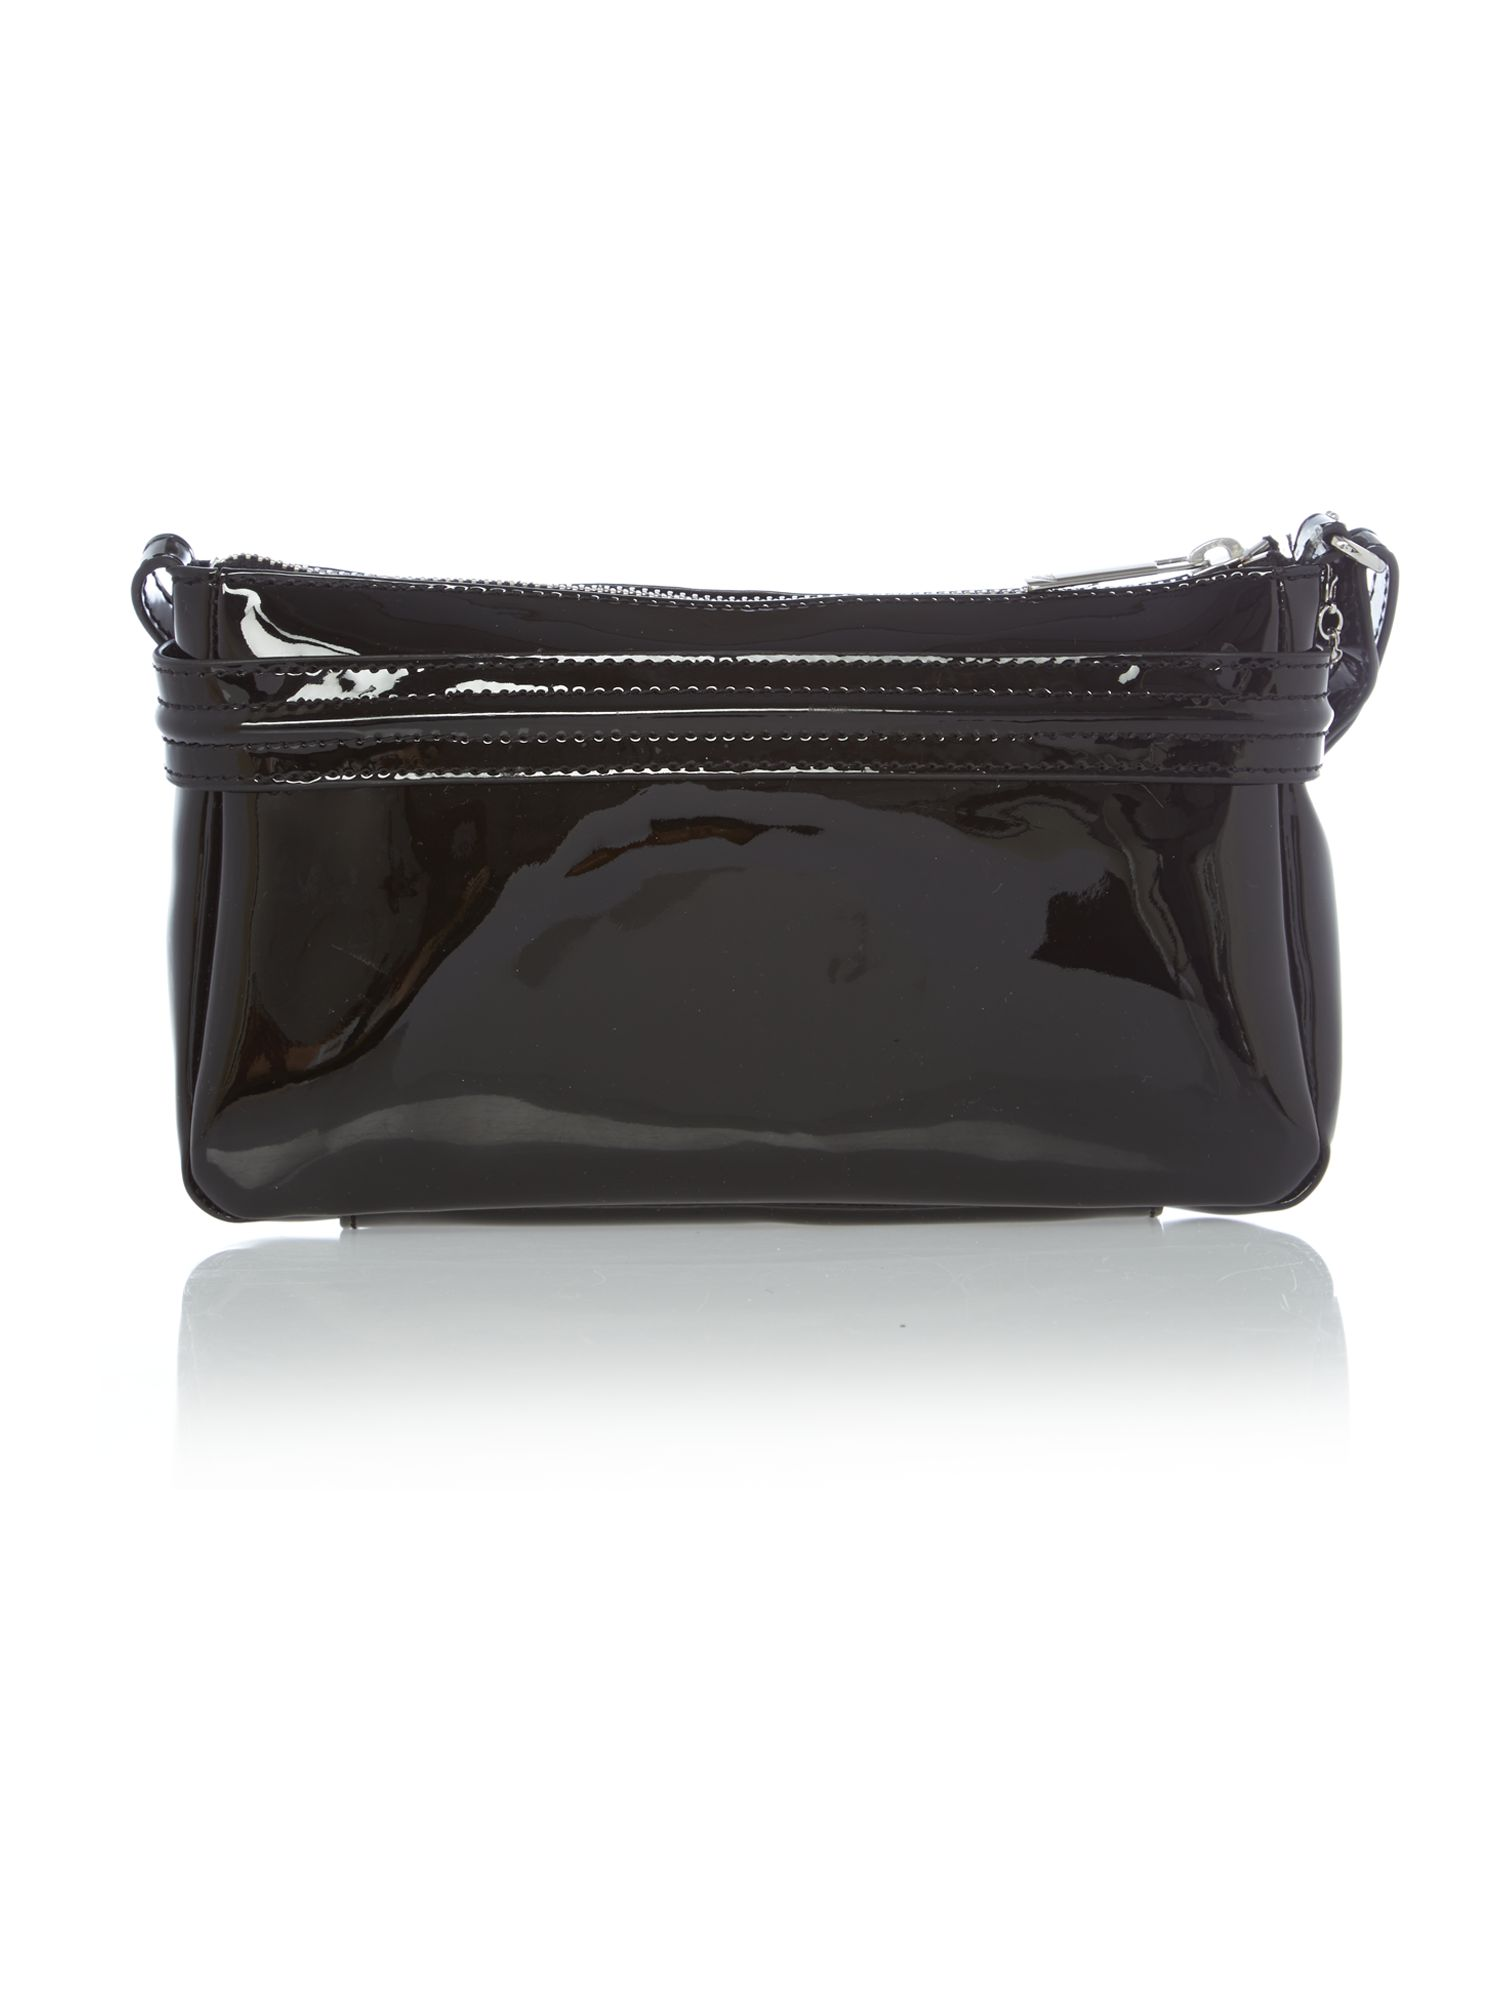 Black patent small cross body